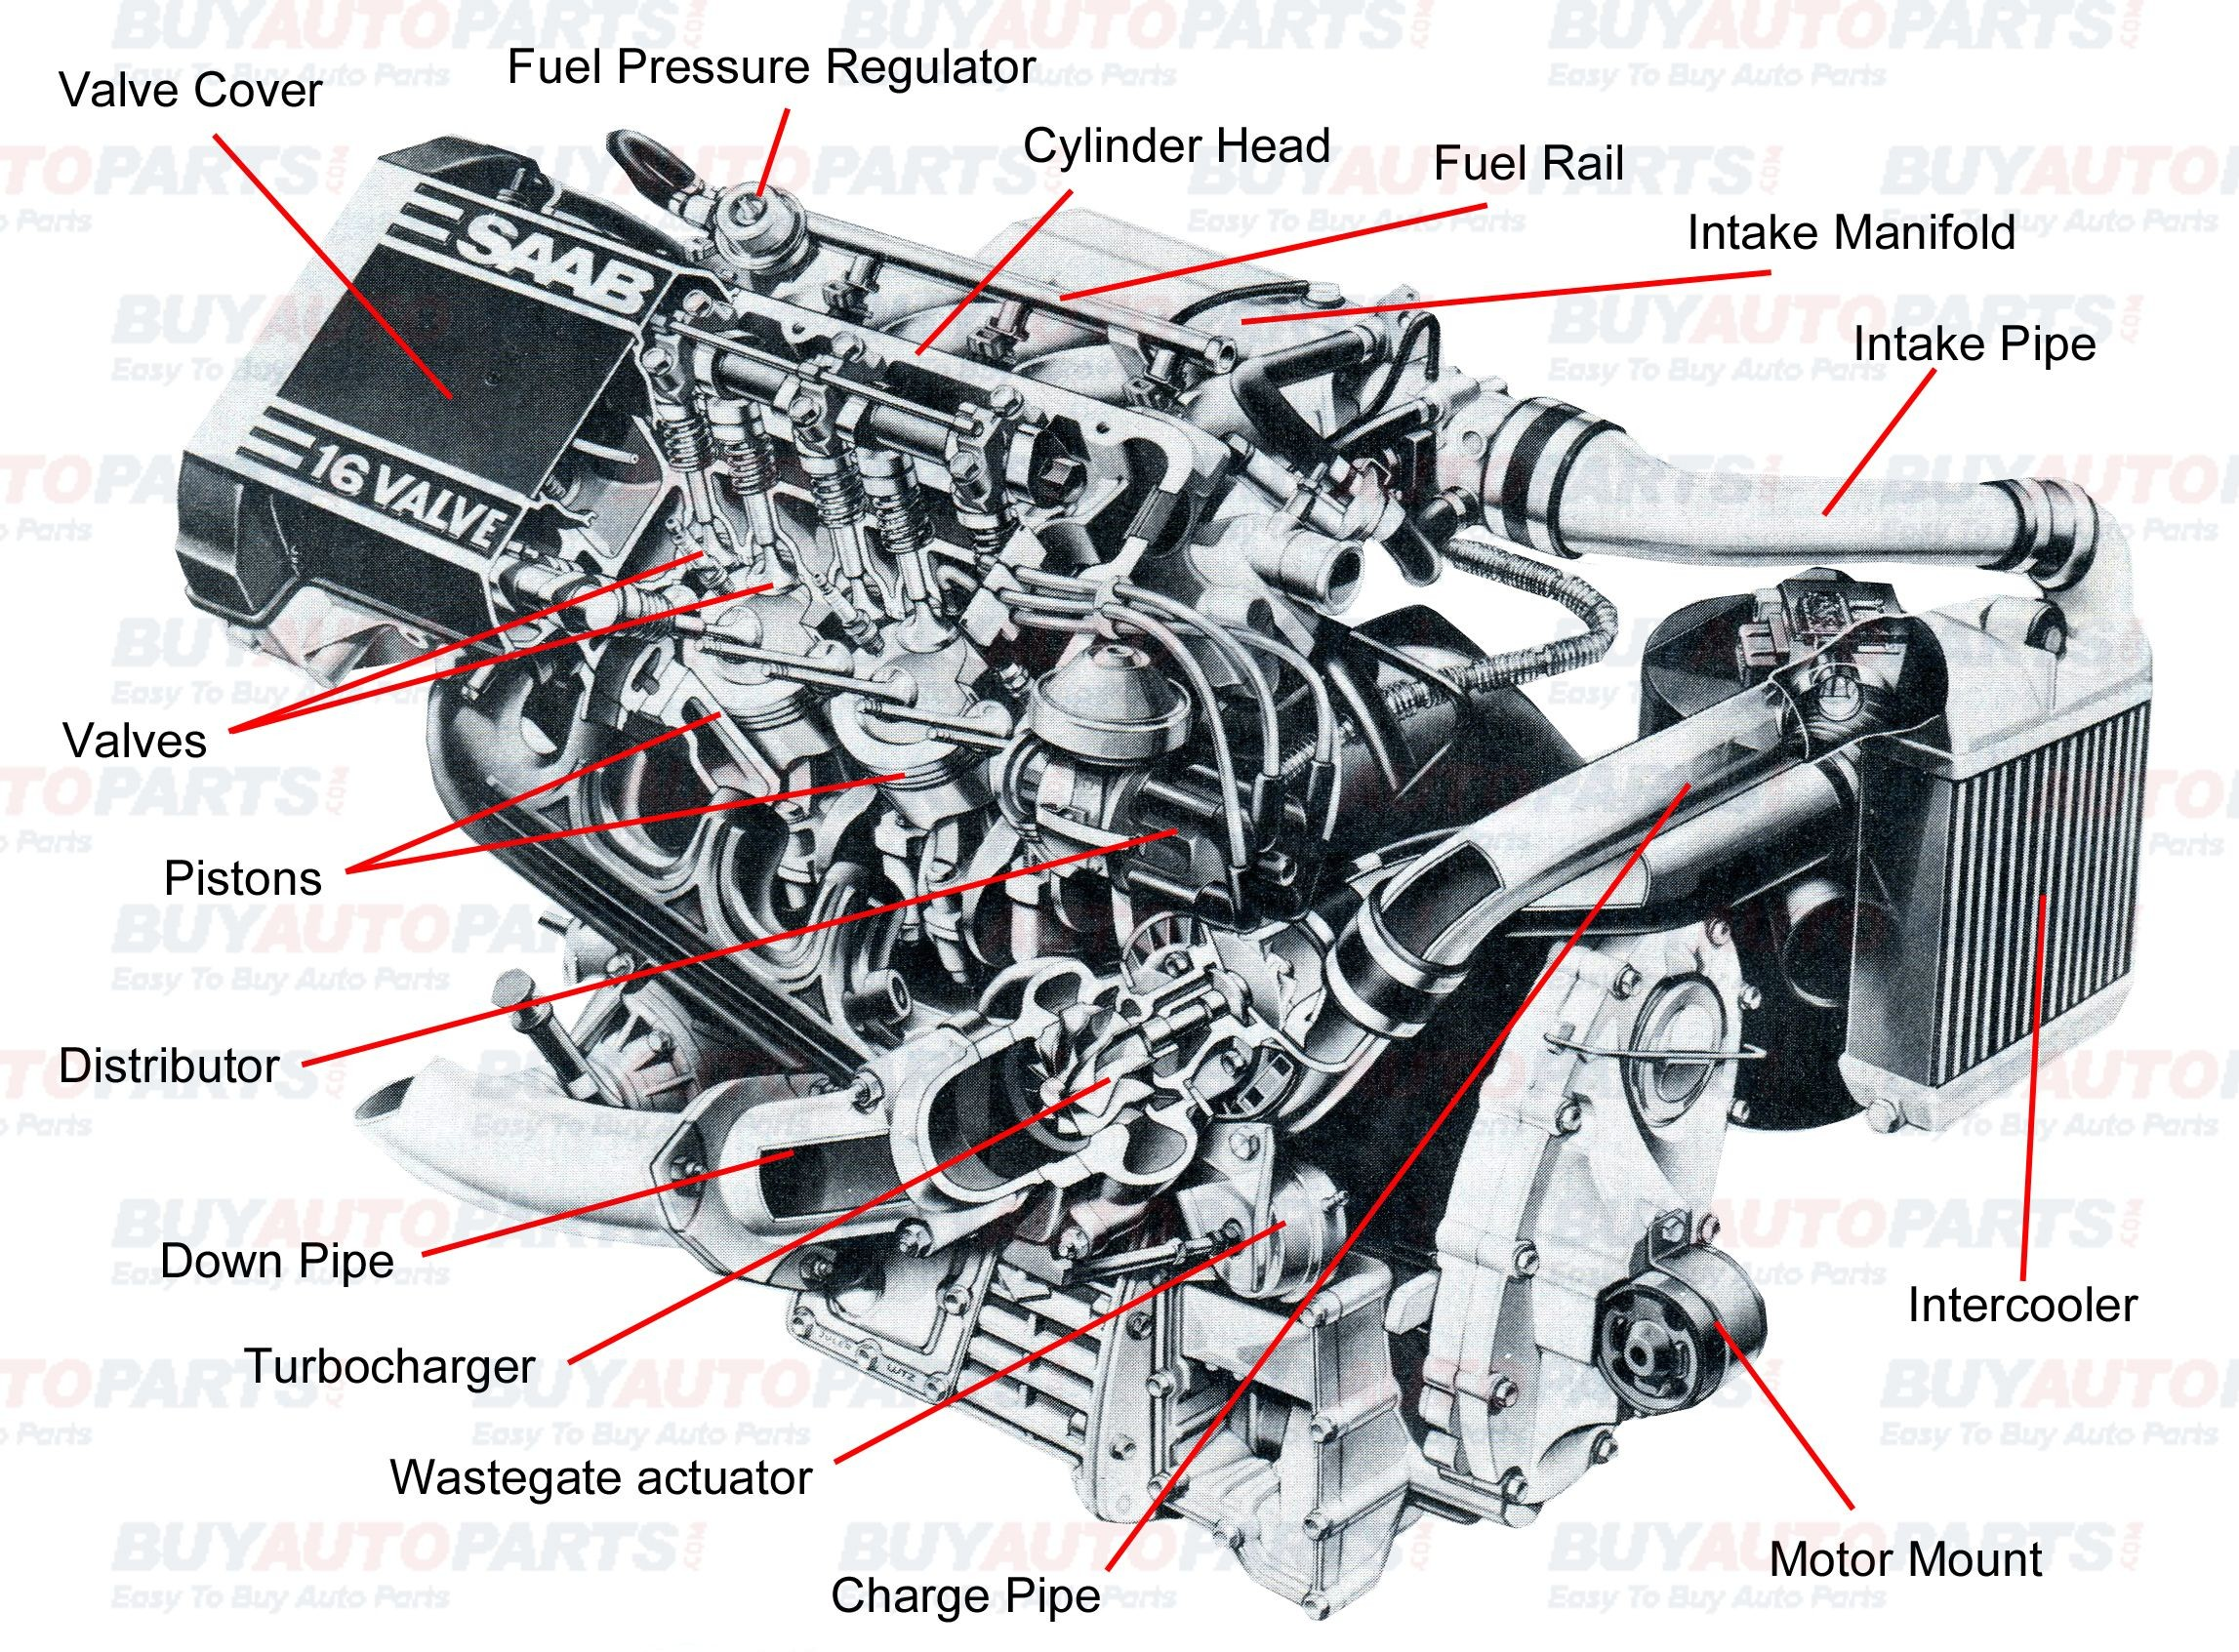 Car Engine Diagram for Dummies Pin by Jimmiejanet Testellamwfz On What Does An Engine with Turbo Of Car Engine Diagram for Dummies